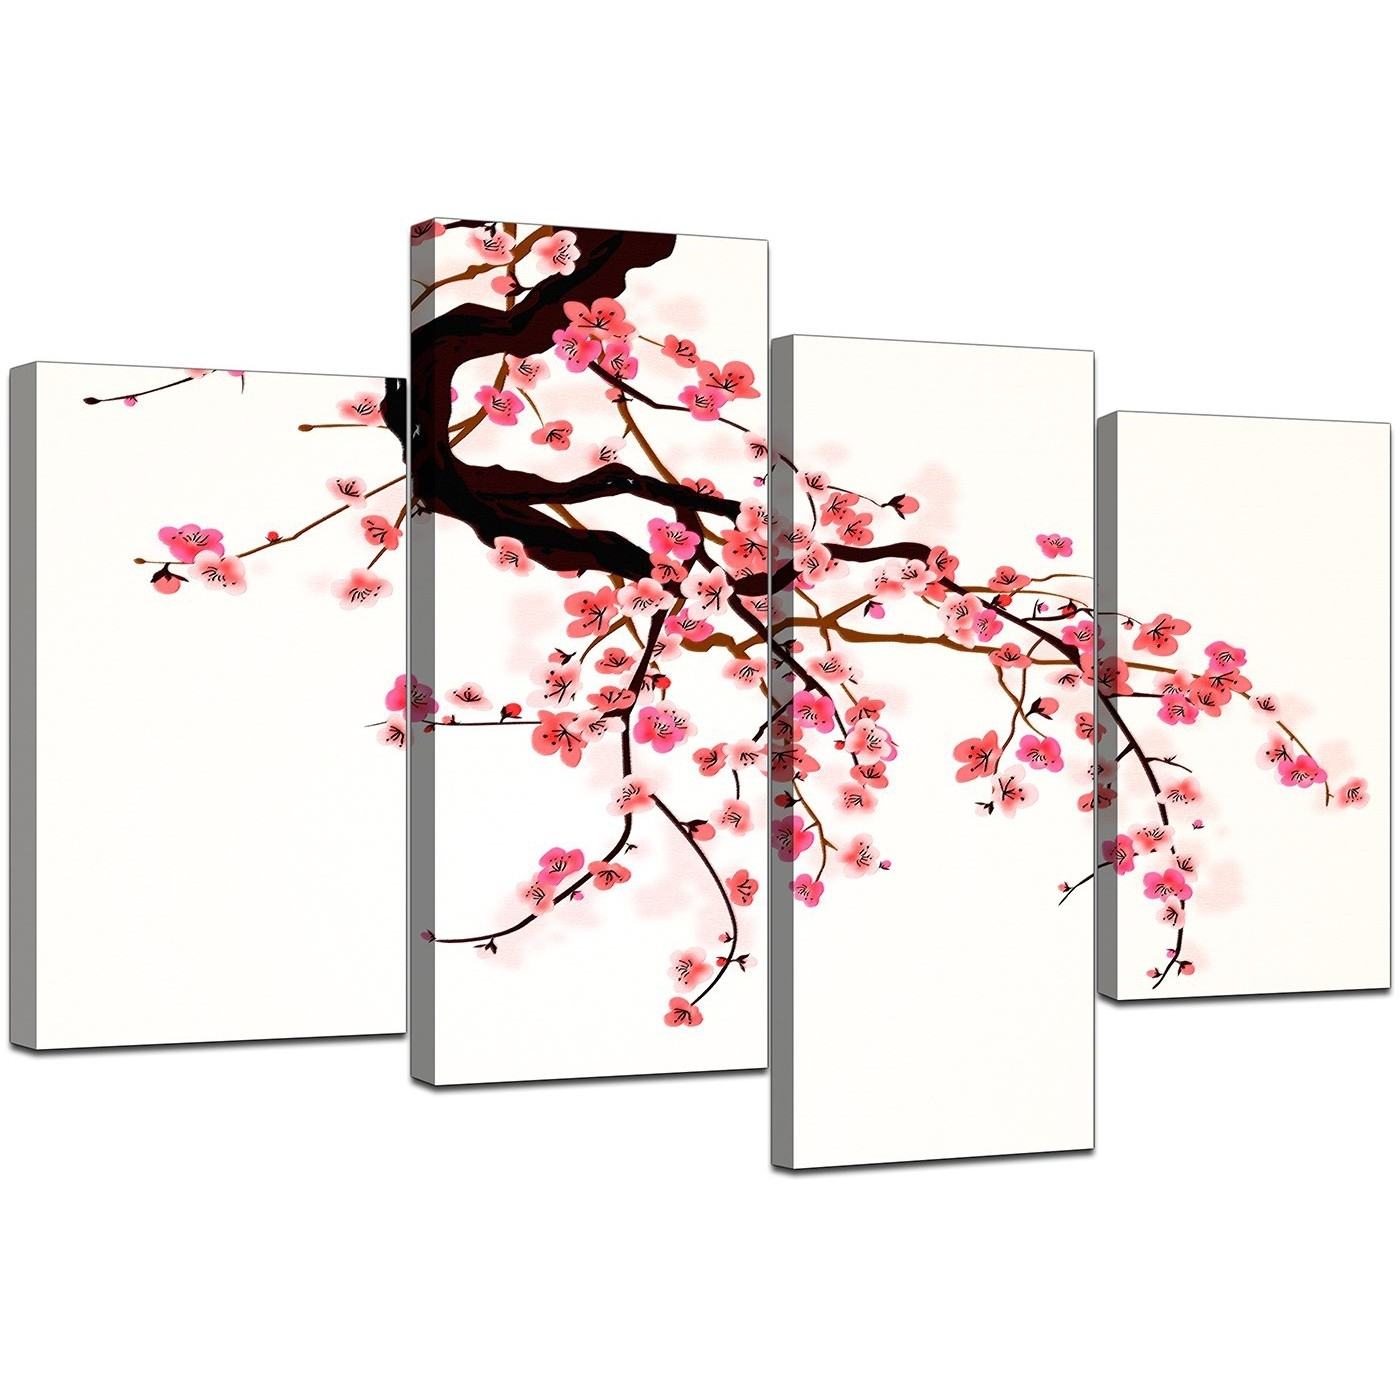 Canvas Prints Uk Of Cherry Blossom For Your Living Room – Set Of 4 In Most Current Cherry Blossom Wall Art (Gallery 9 of 20)